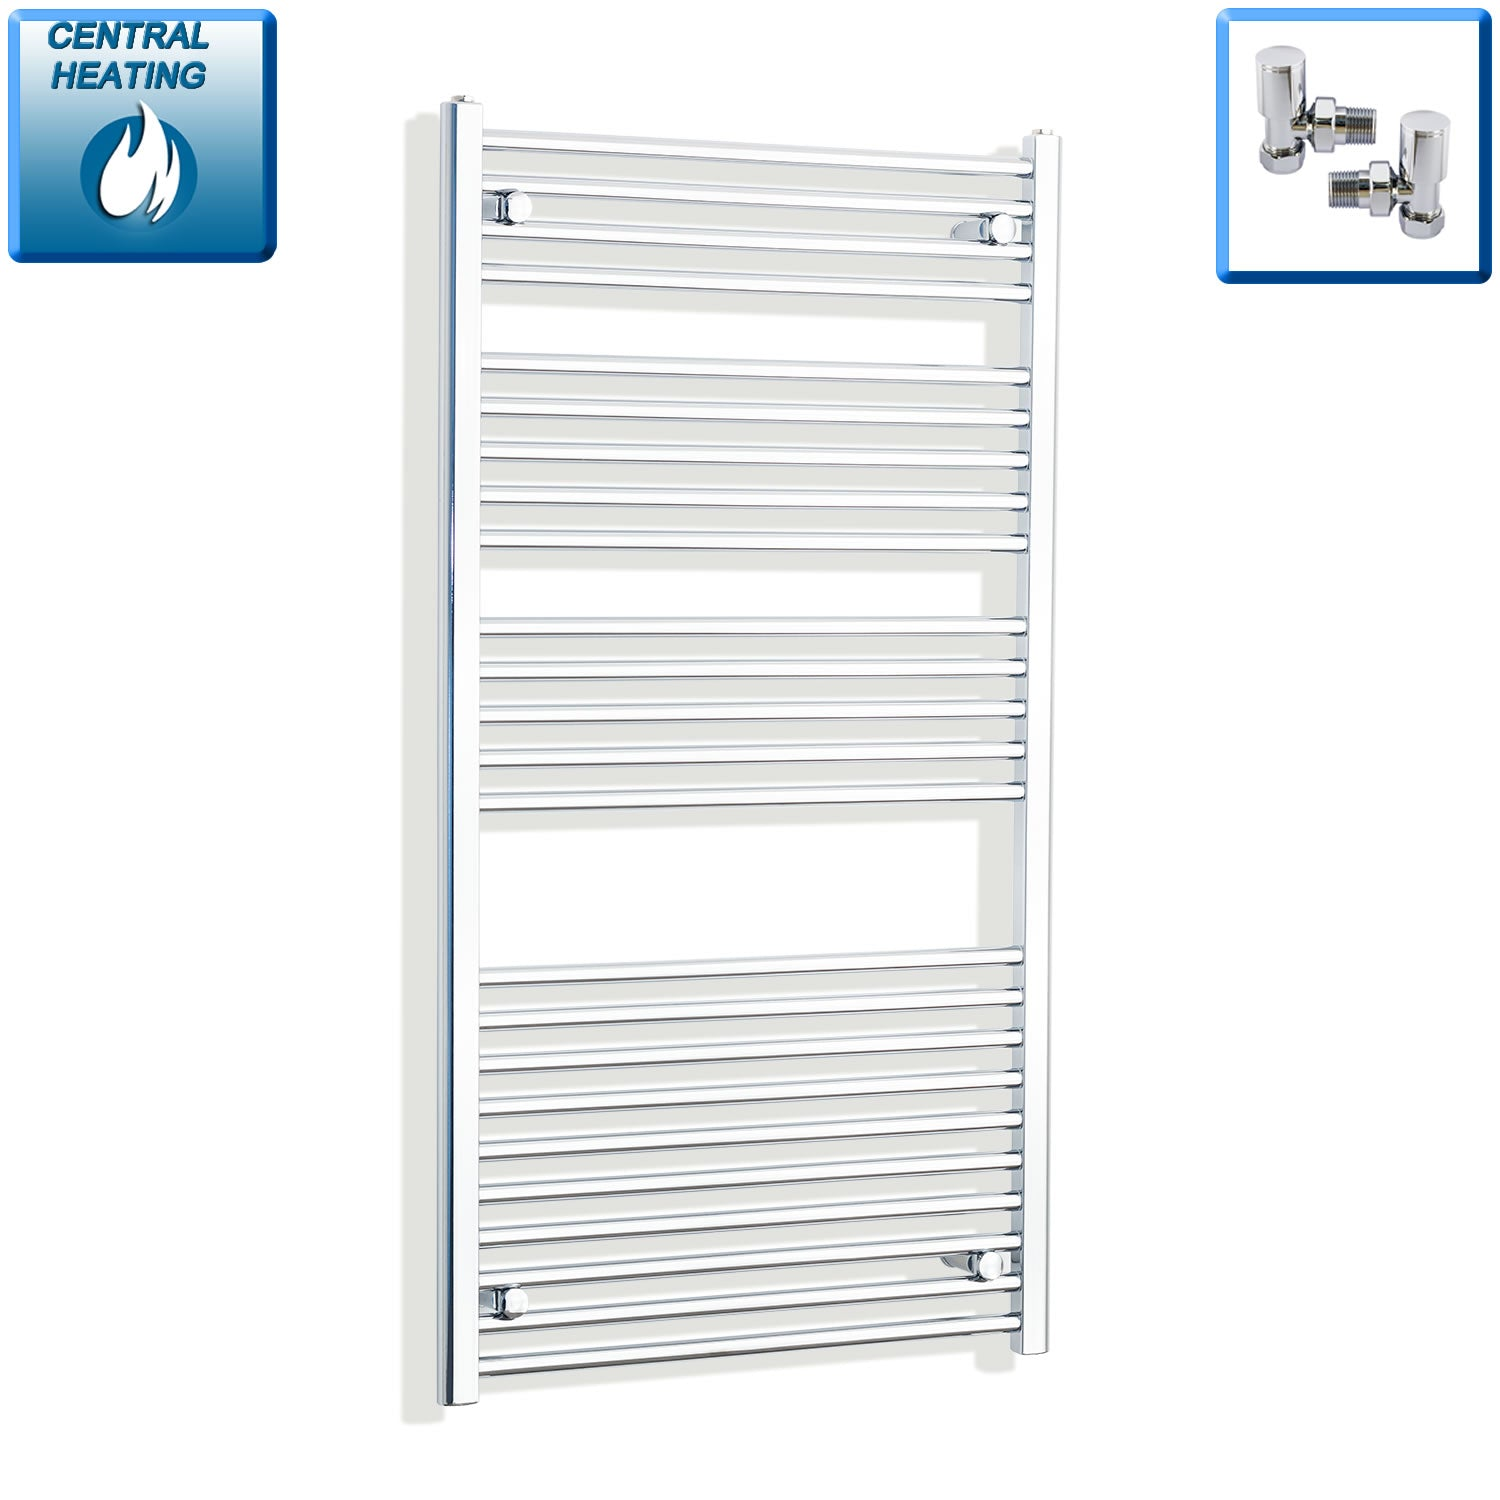 750mm Wide 1300mm High Chrome Towel Rail Radiator With Angled Valve